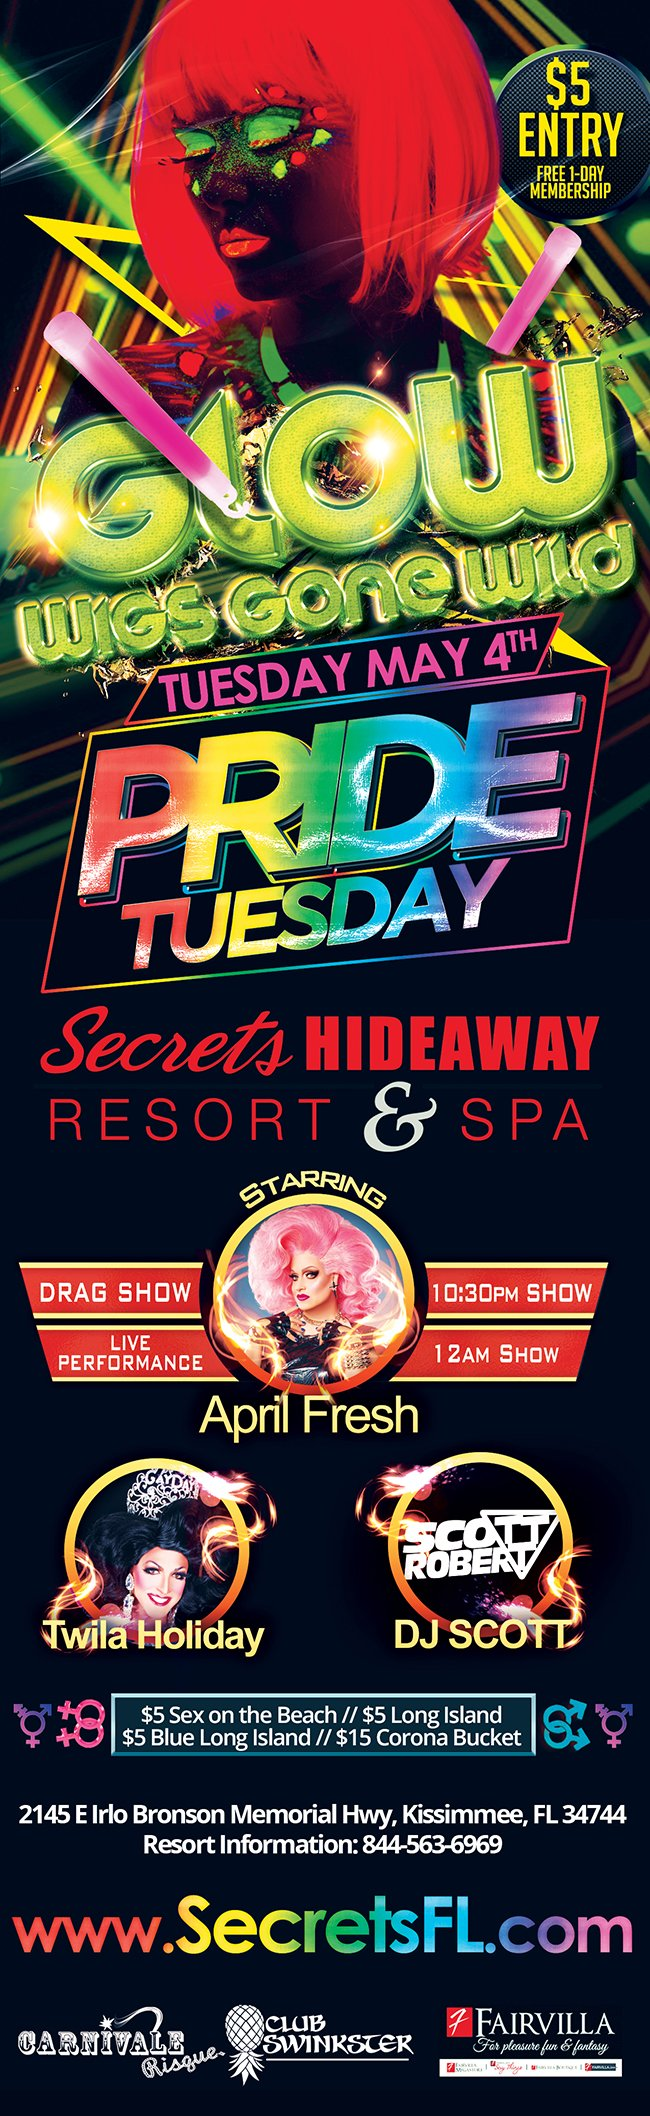 Events - Pride Tuesday Orlando, Florida Lifestyle and Swinger Parties